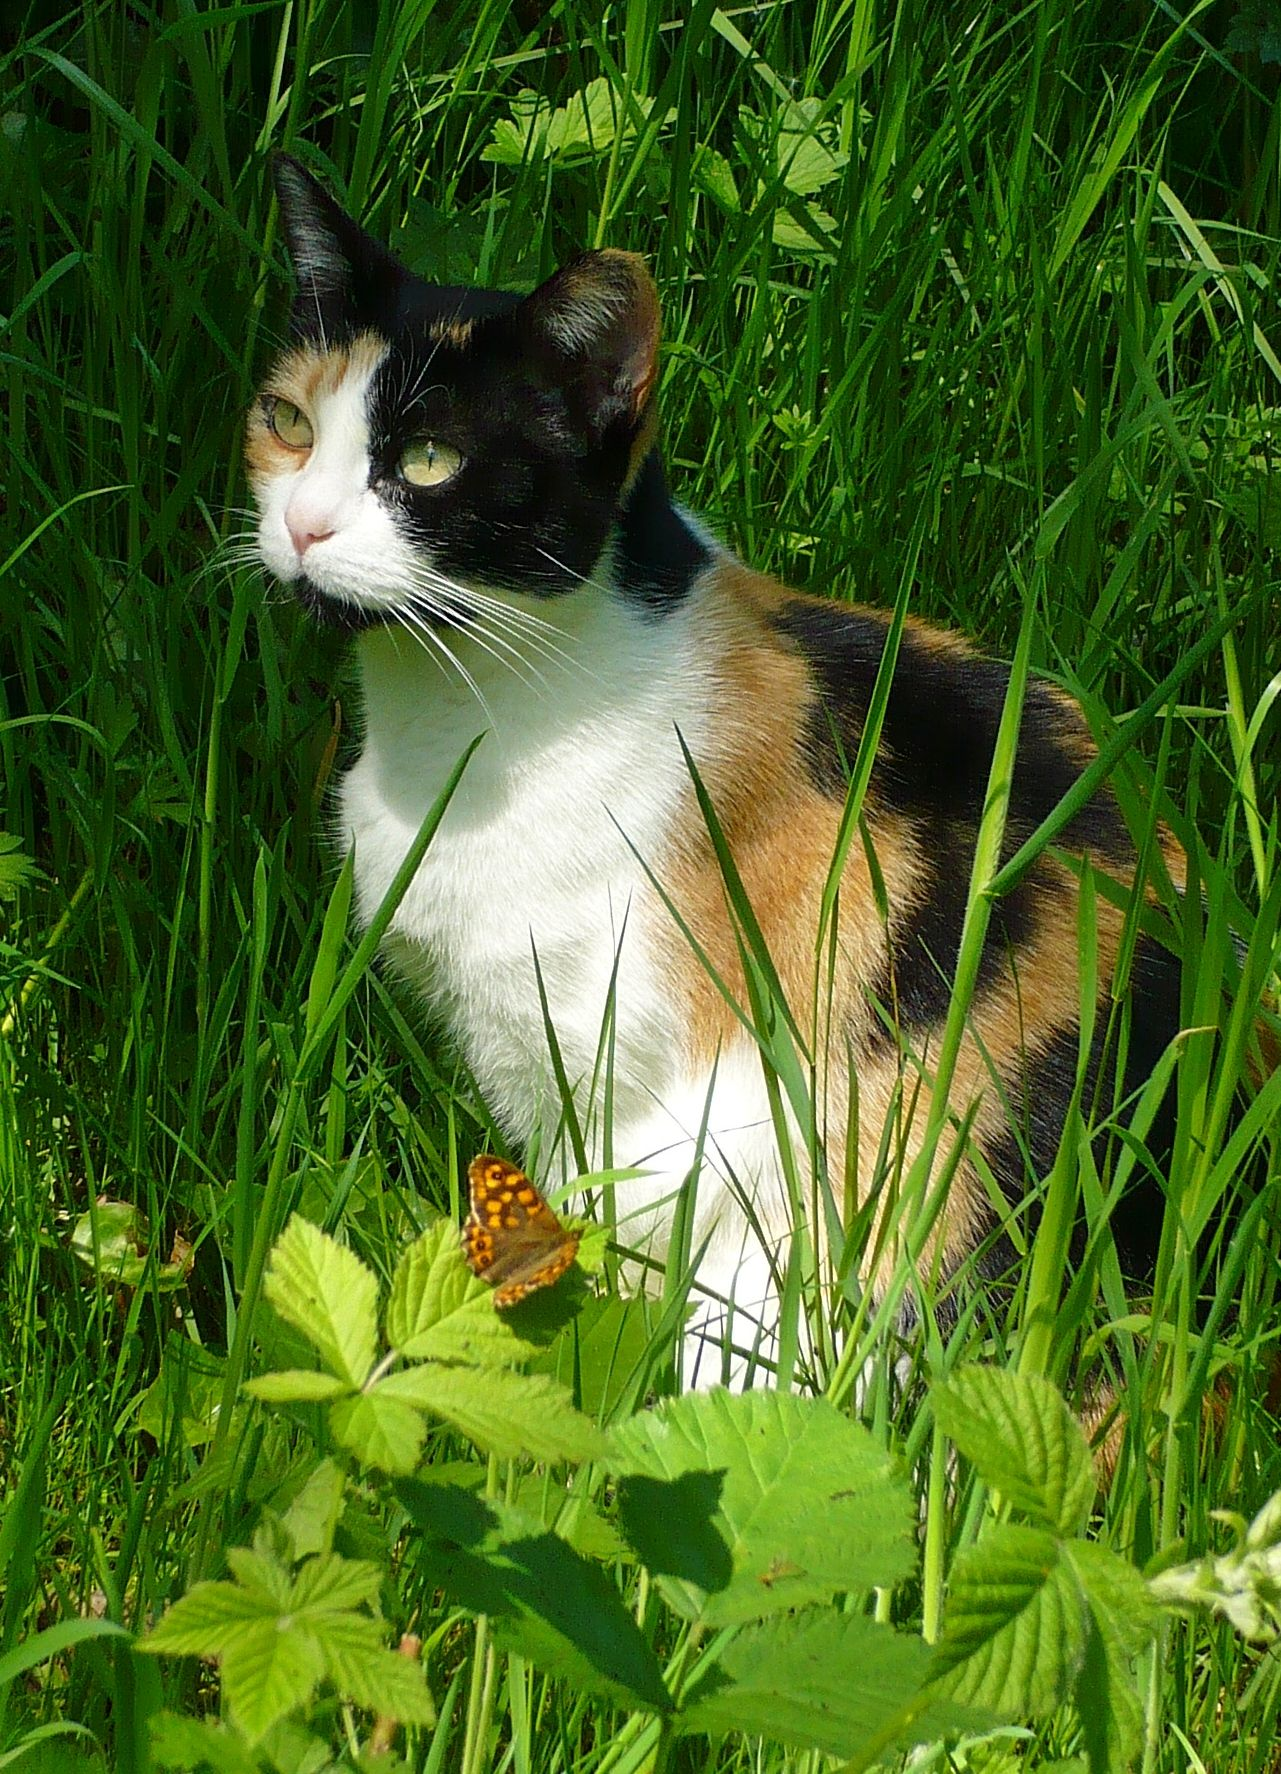 Google Image Result For Http Upload Wikimedia Org Wikipedia Commons A Ab Calico Cat Named Iris Zenera 04 Jpg Fancy Cats Russian Blue Cat Calico Cat